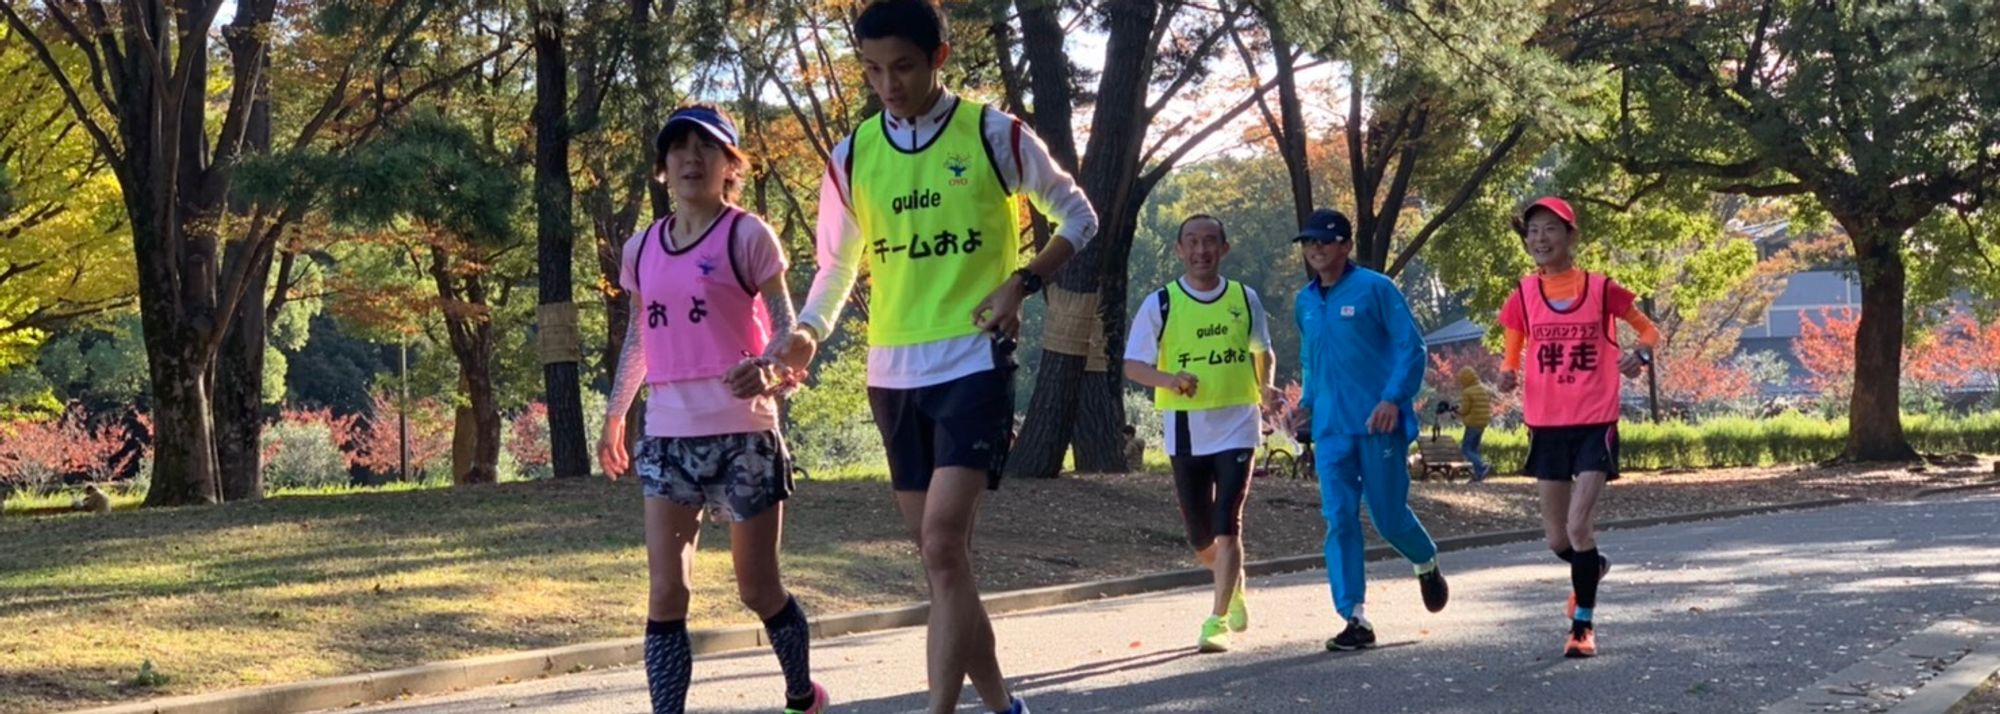 For Yoko Aoki, one of Japan's top runners with a visual impairment, running is not quite so simple